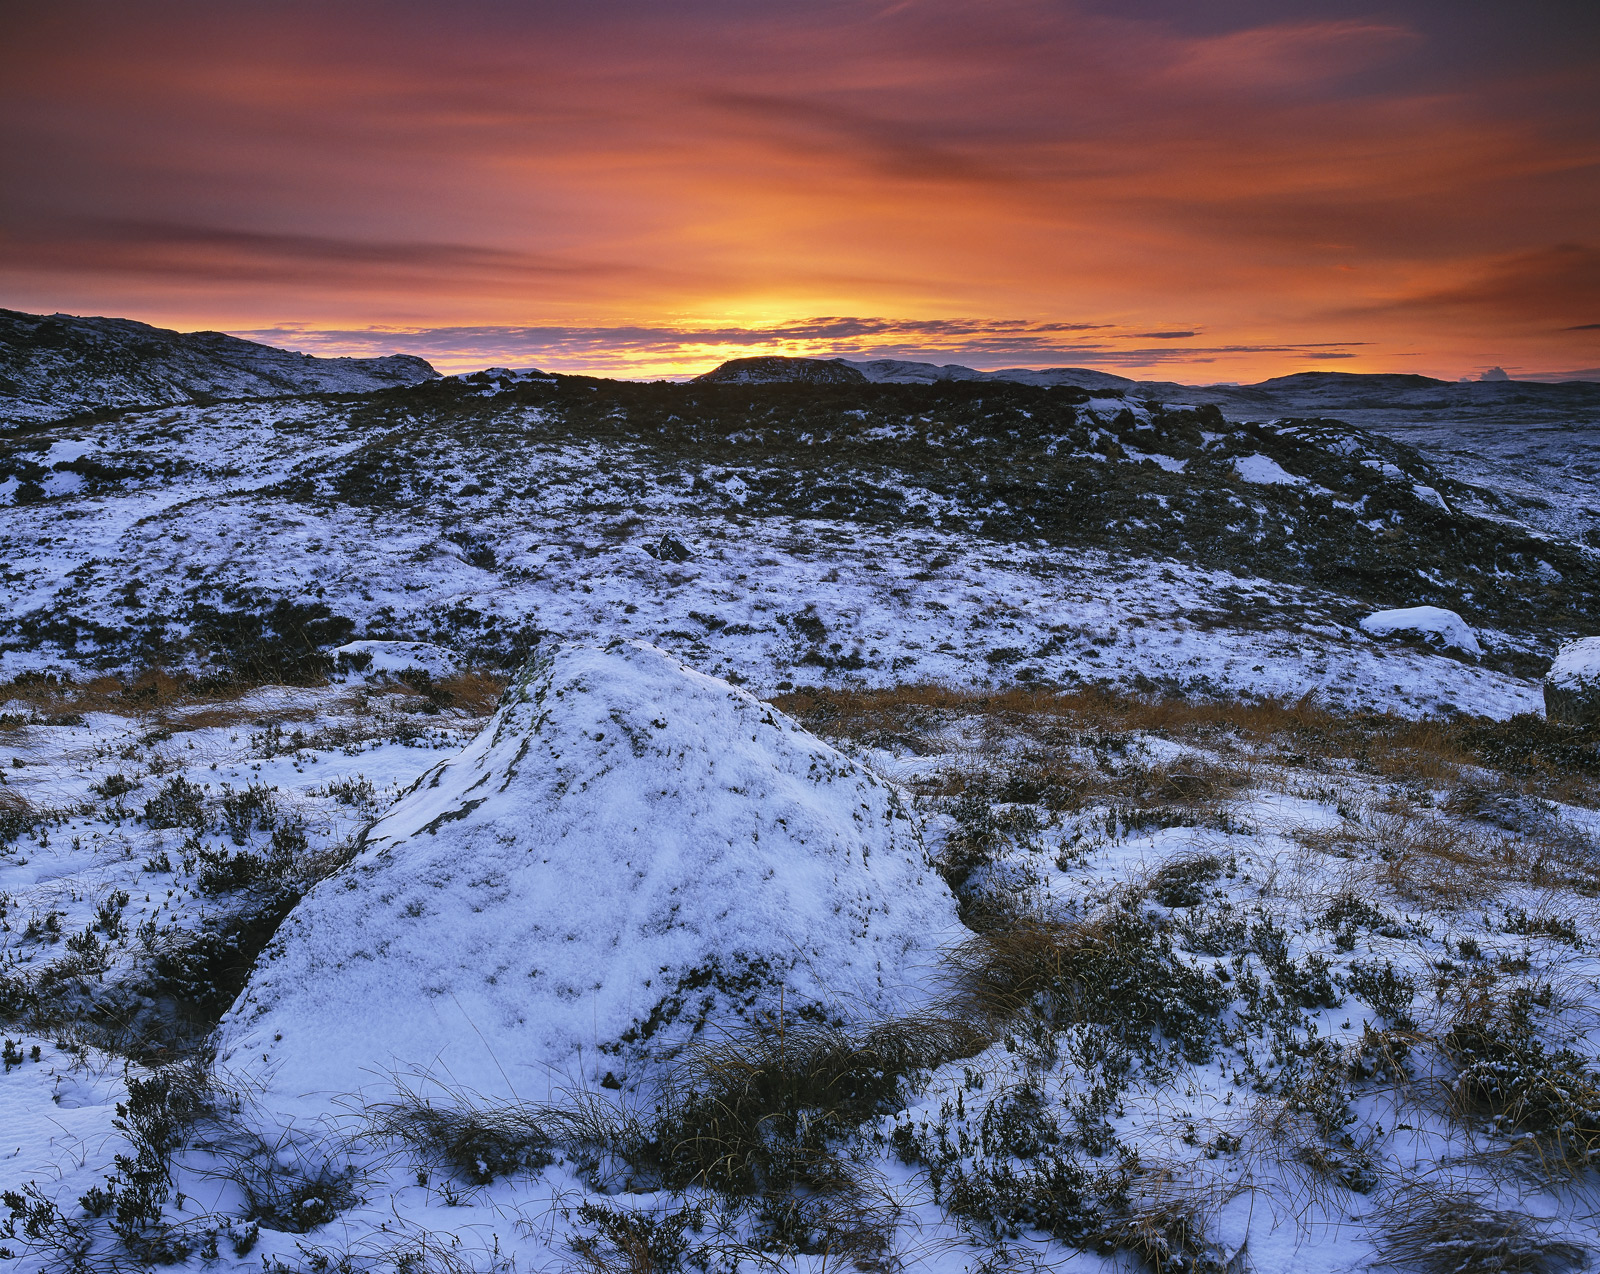 When snow is new and neither too heavy or too sparse then the vegetation is able to show through giving the landscape a little...